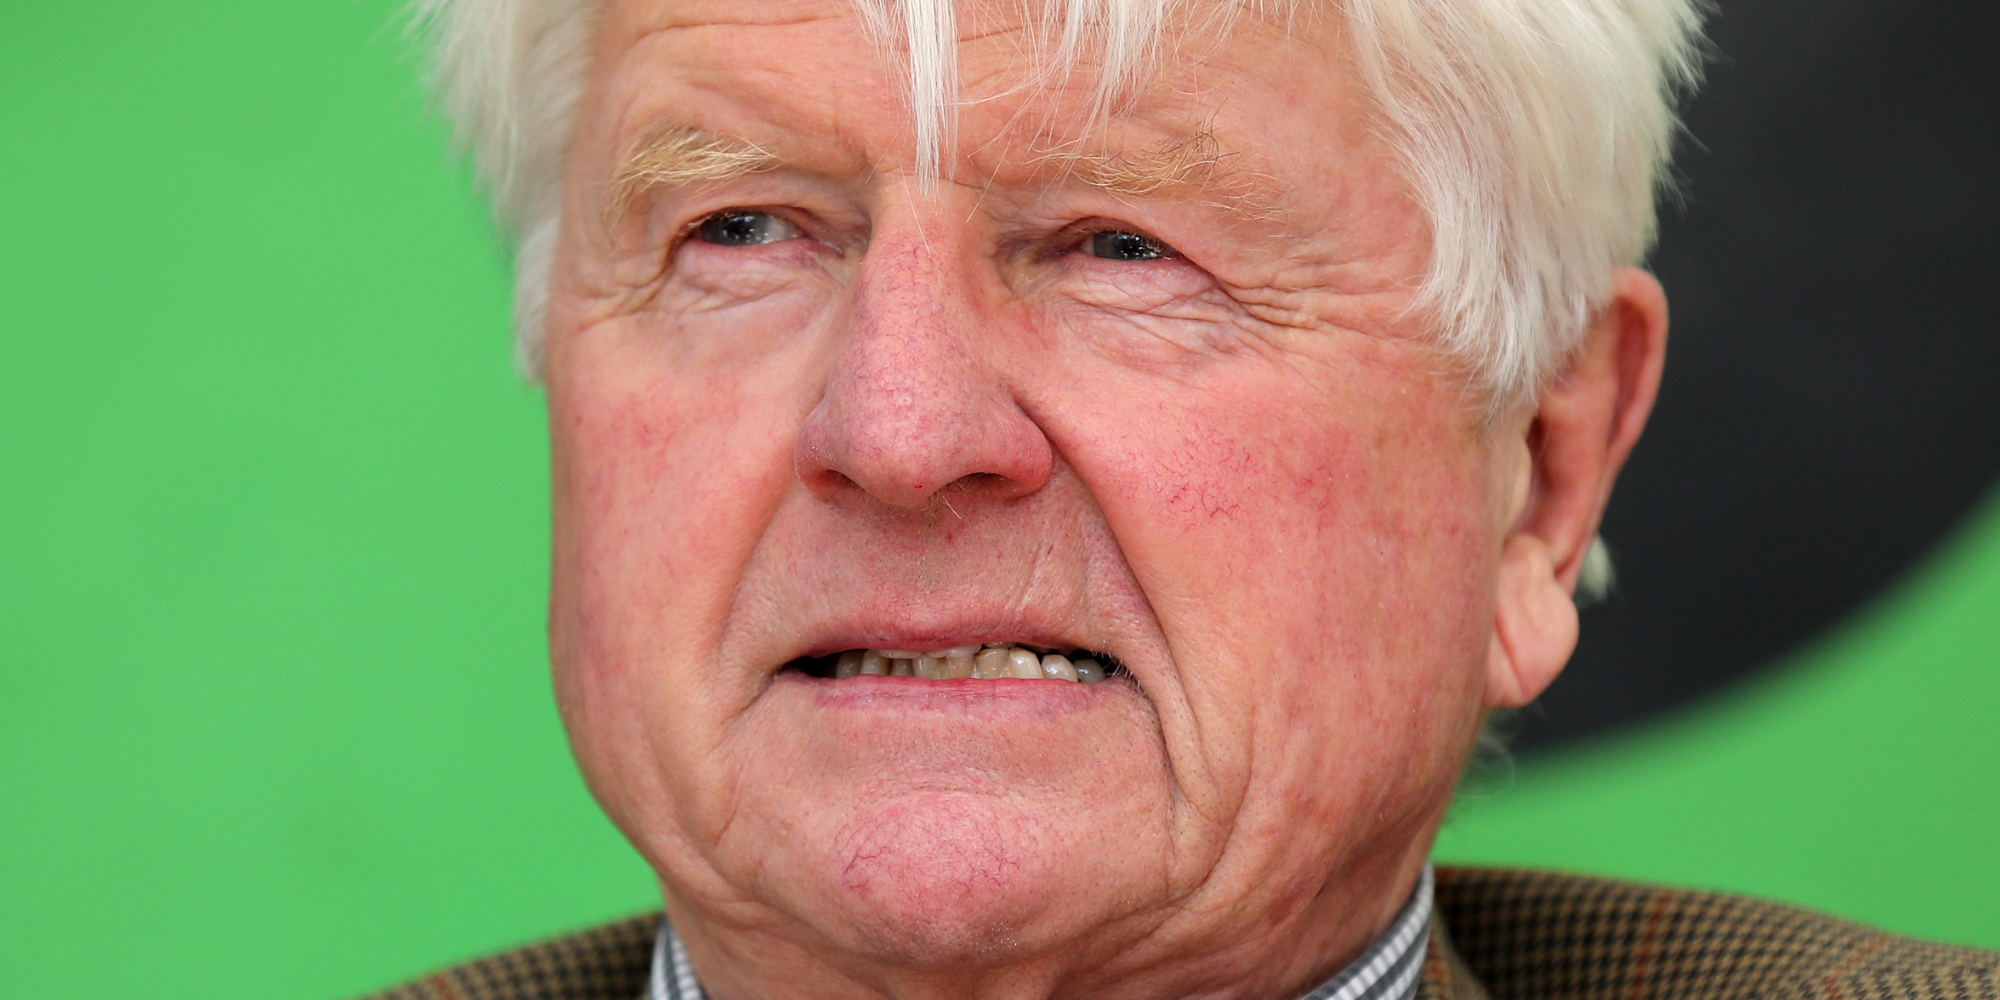 Boris Johnson's father Stanley ignores his son's warnings and jets off to luxury Greek villa